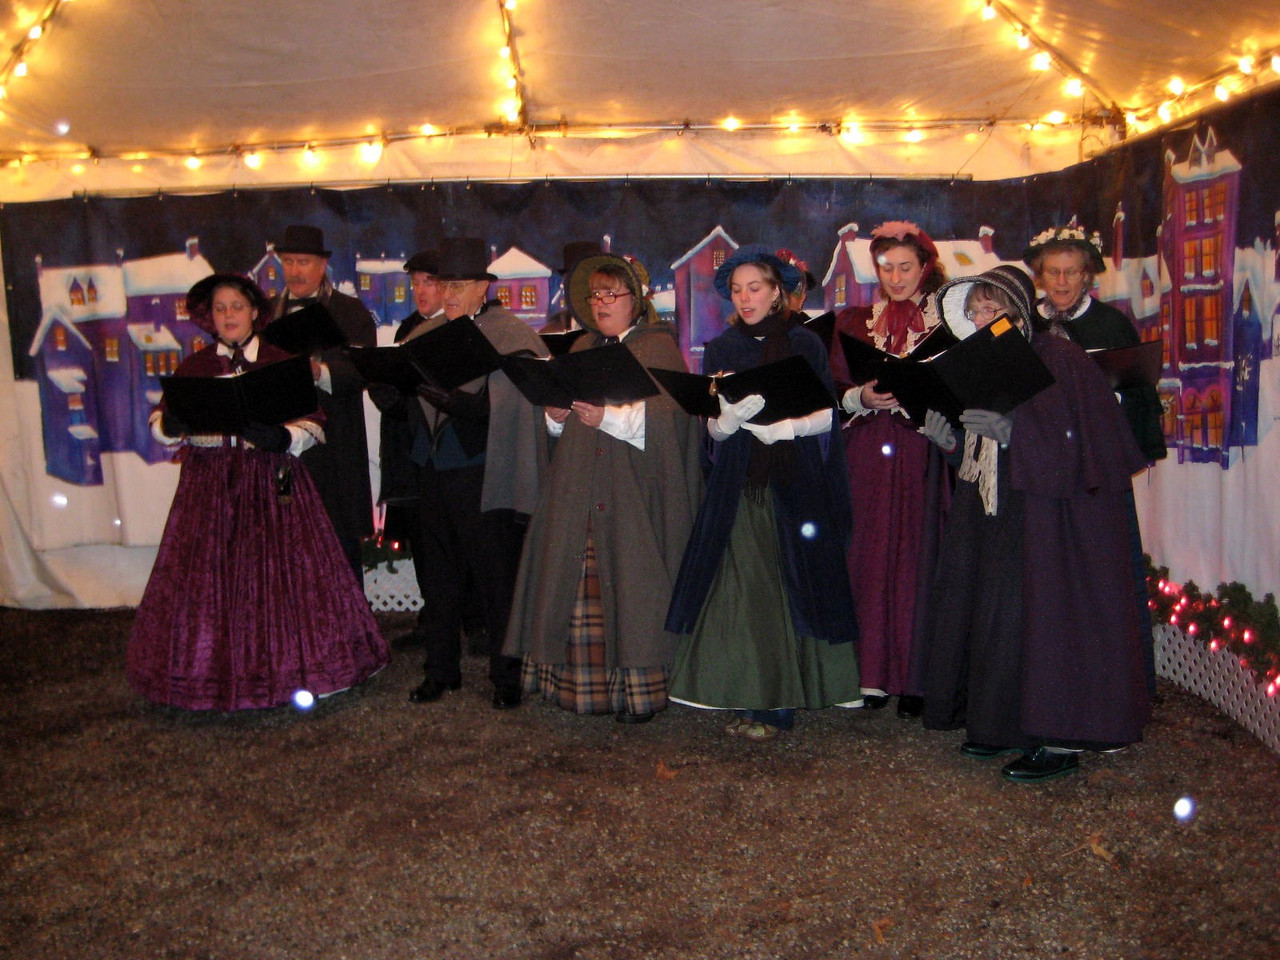 Seeing the Christmas Lights show at Warm Beach (Dec. '08) - The carolers were fun to watch.